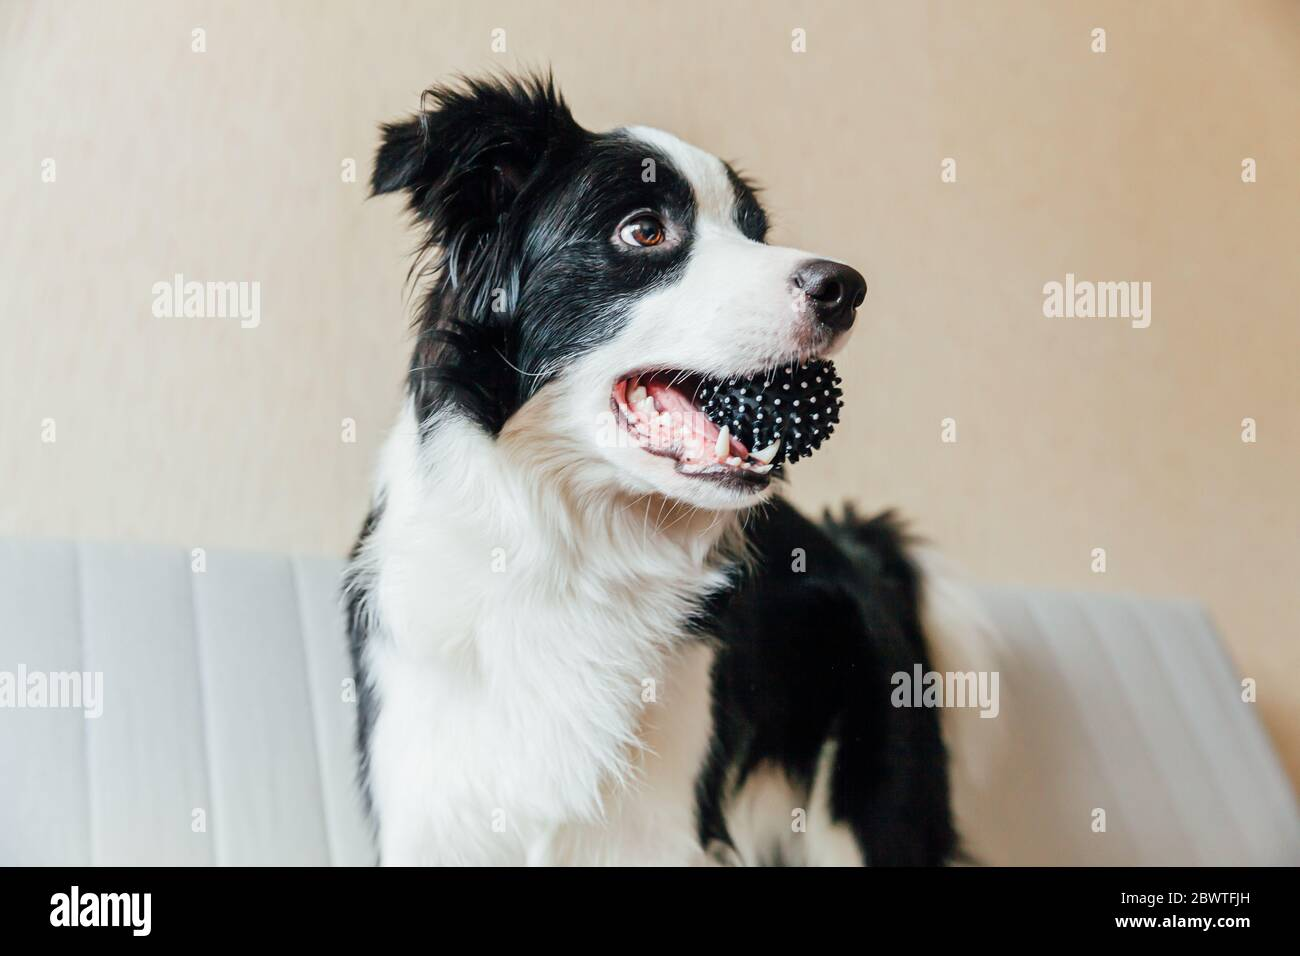 Funny Portrait Of Cute Smiling Puppy Dog Border Collie Playing With Toy Ball On Couch Indoors